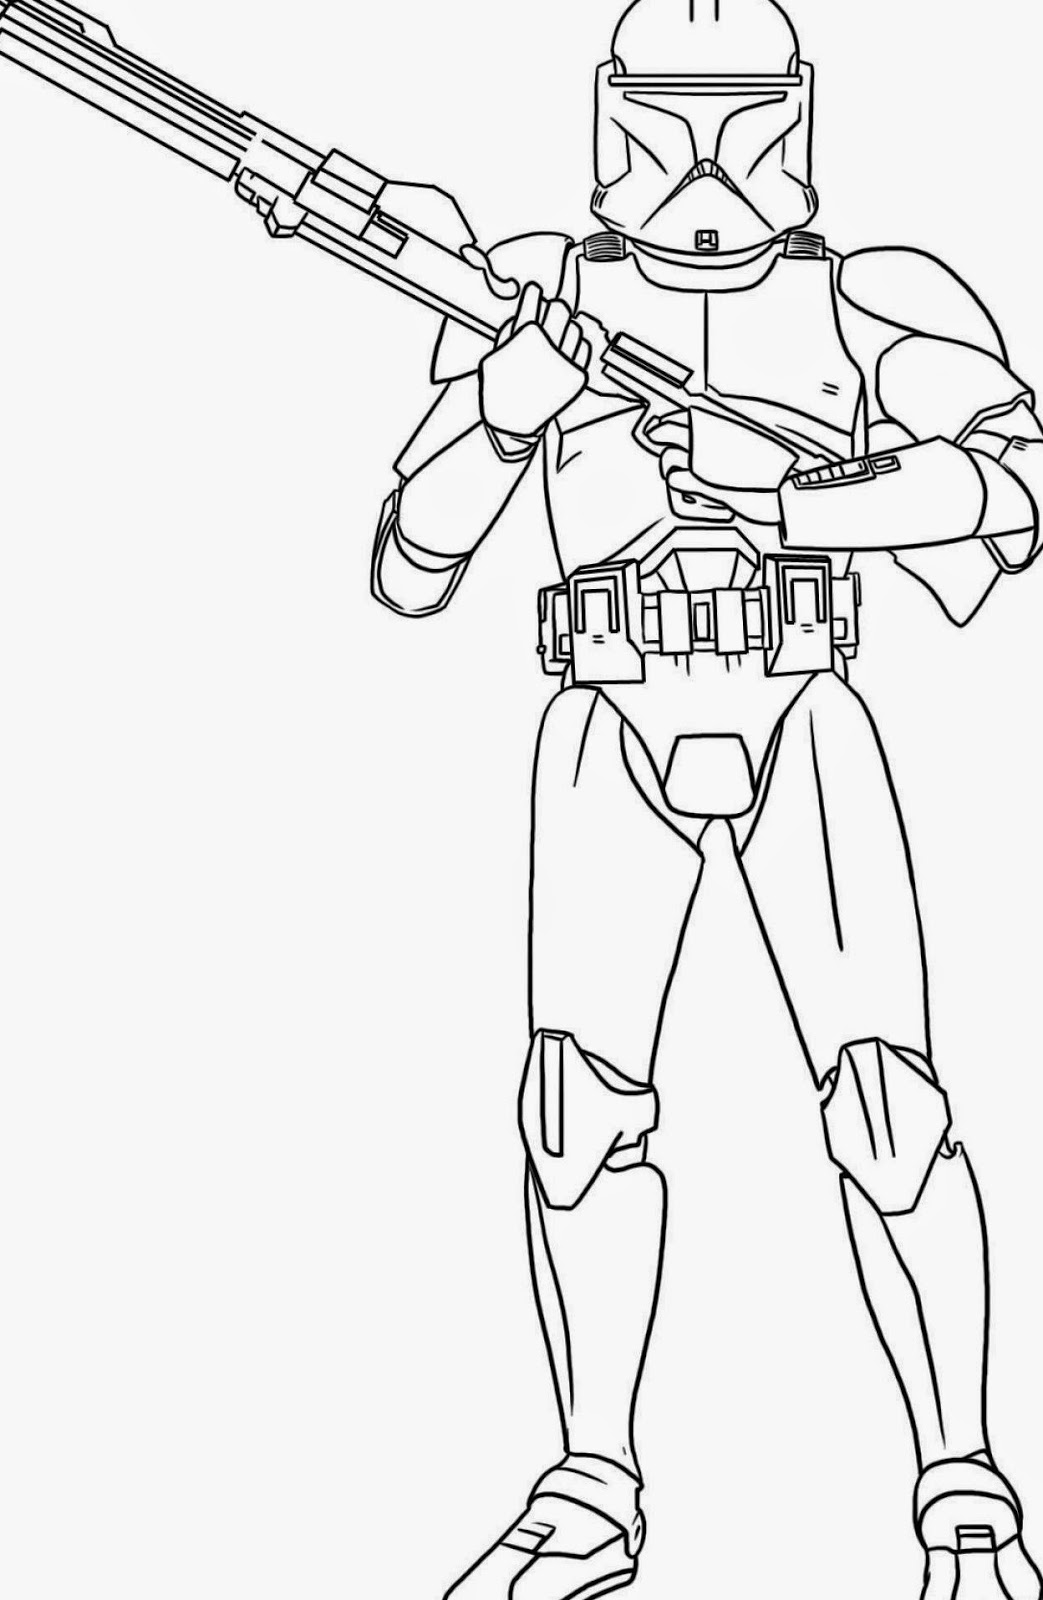 star wars color free printable star wars the last jedi coloring pages star wars color